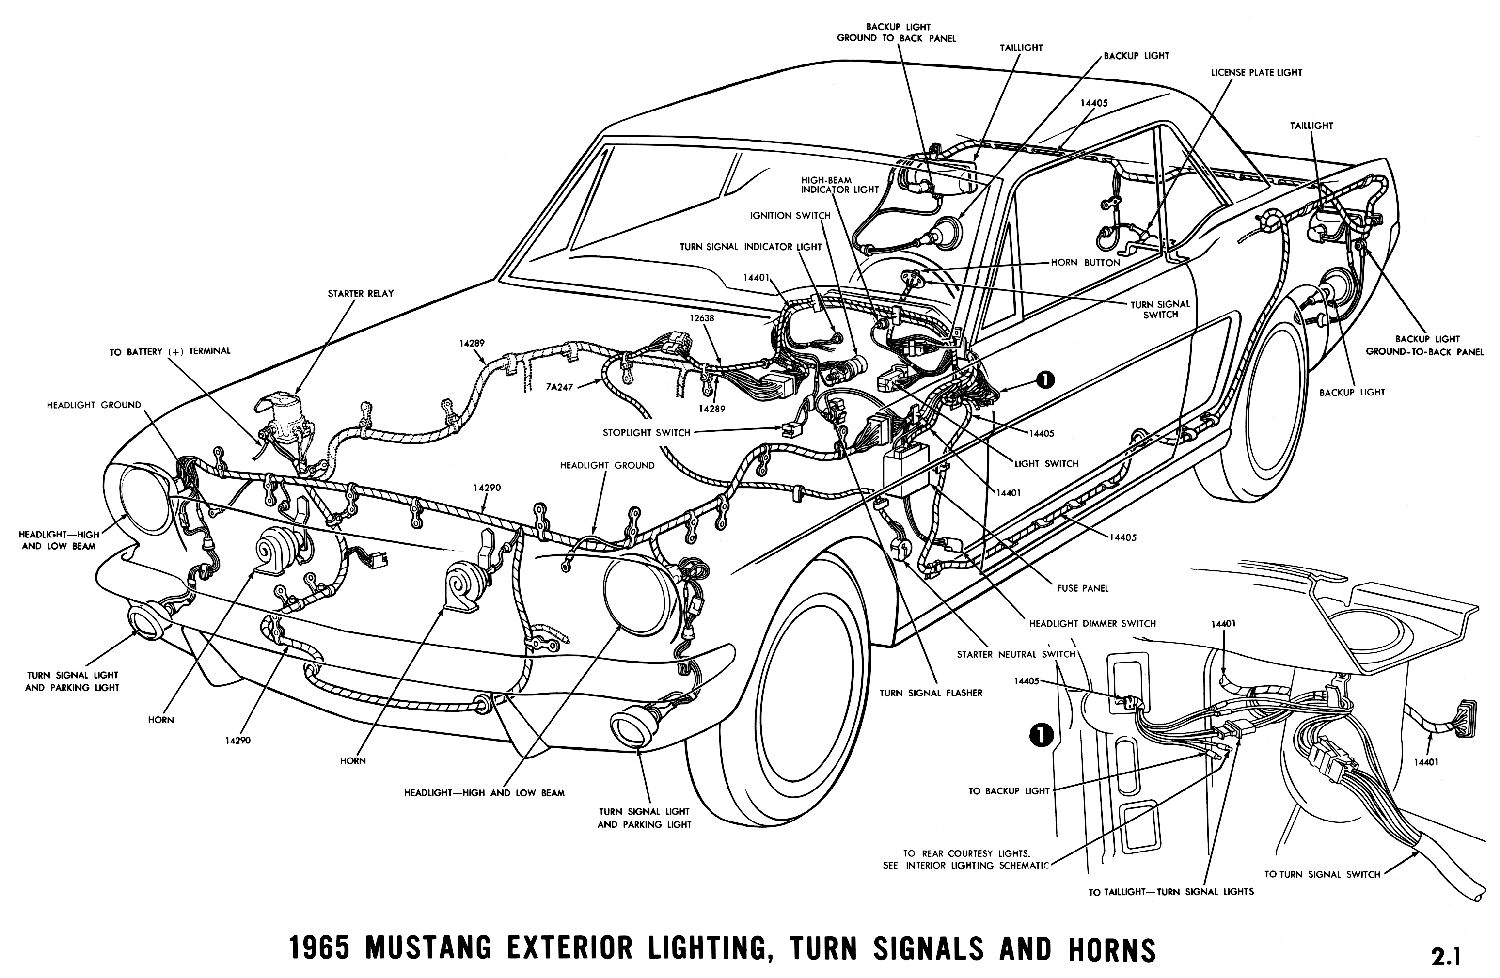 1965 Mustang Wiring Diagrams on 64 chevy c10 wiring diagram